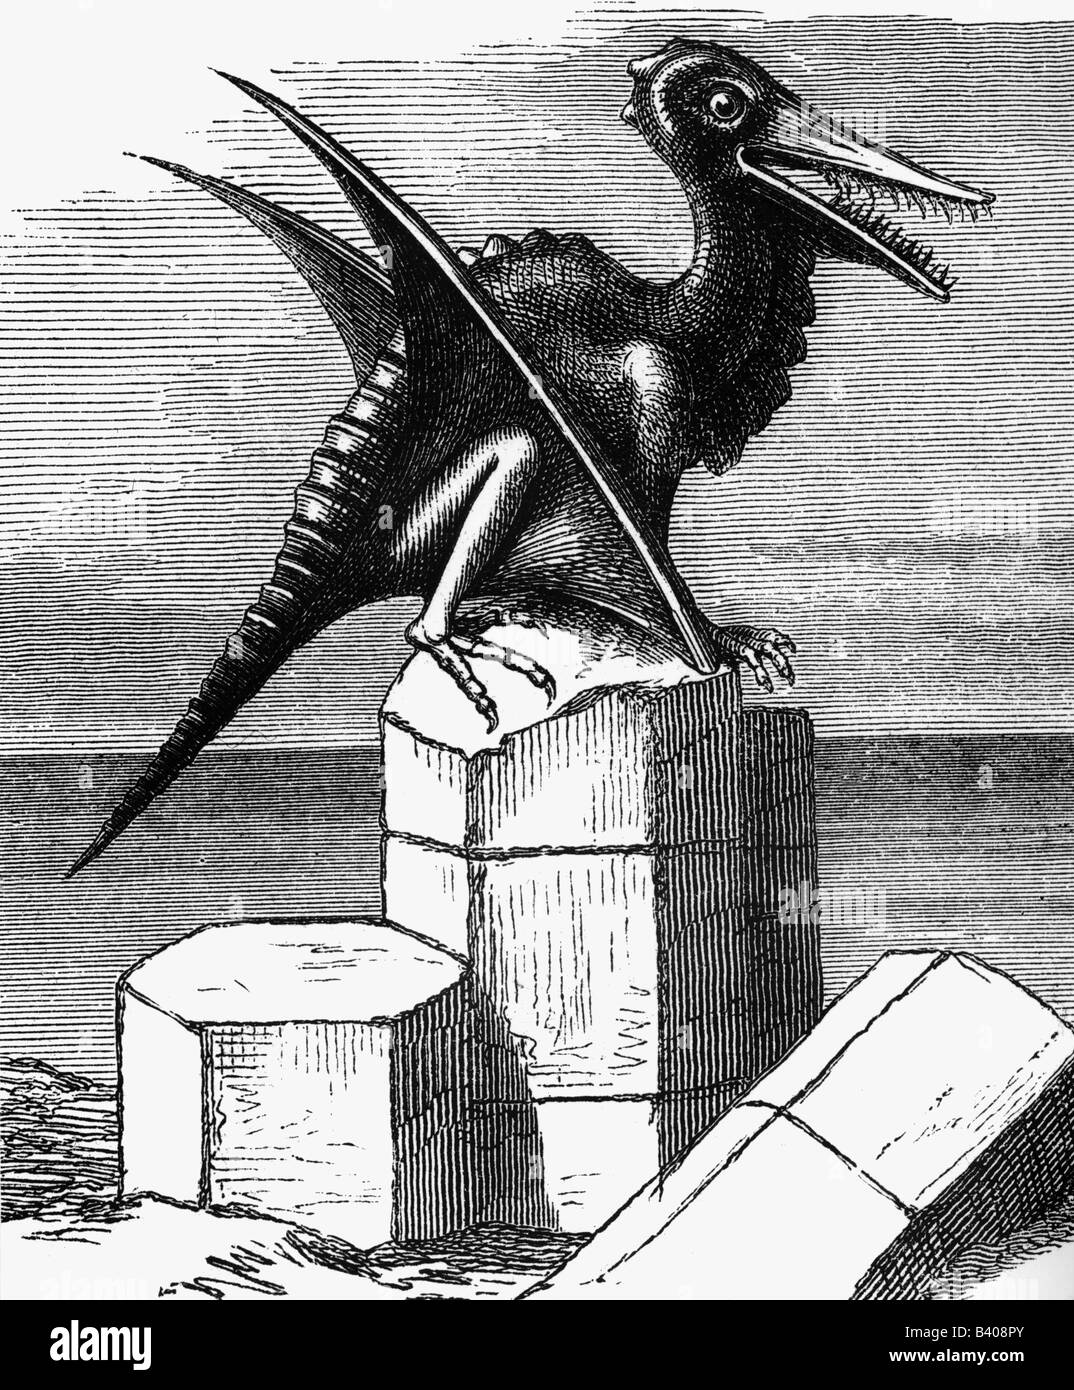 prehistory, animals, saurs, Pterodactylus, wood engraving, 19th century, pterosaur, late jurassic period, zoology, - Stock Image